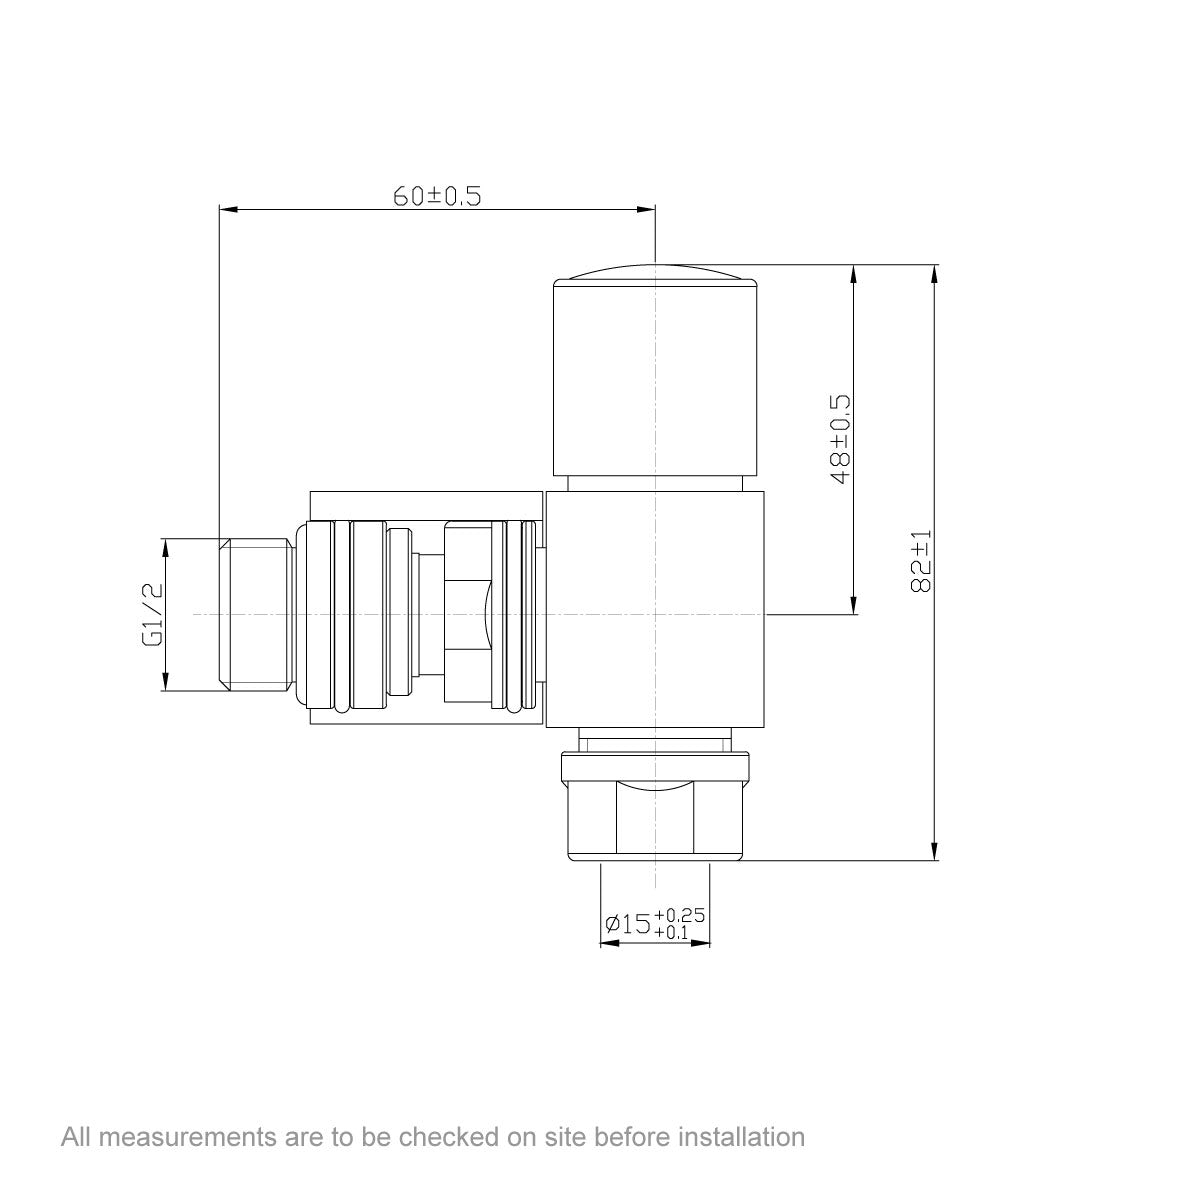 Dimensions for Orchard Square angled radiator valves